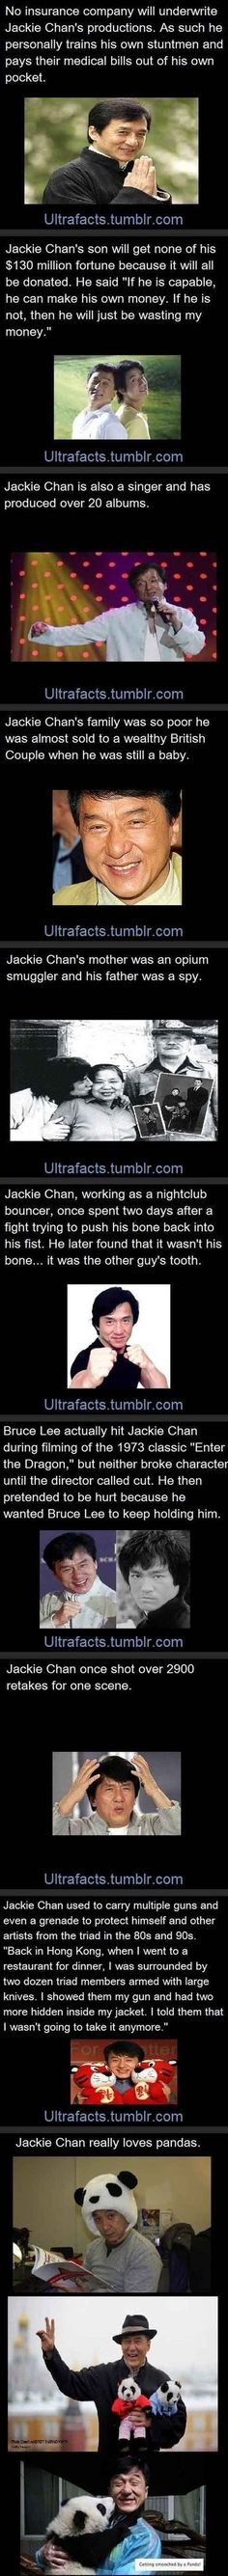 Jackie Chan - The World's Cheeriest Badass